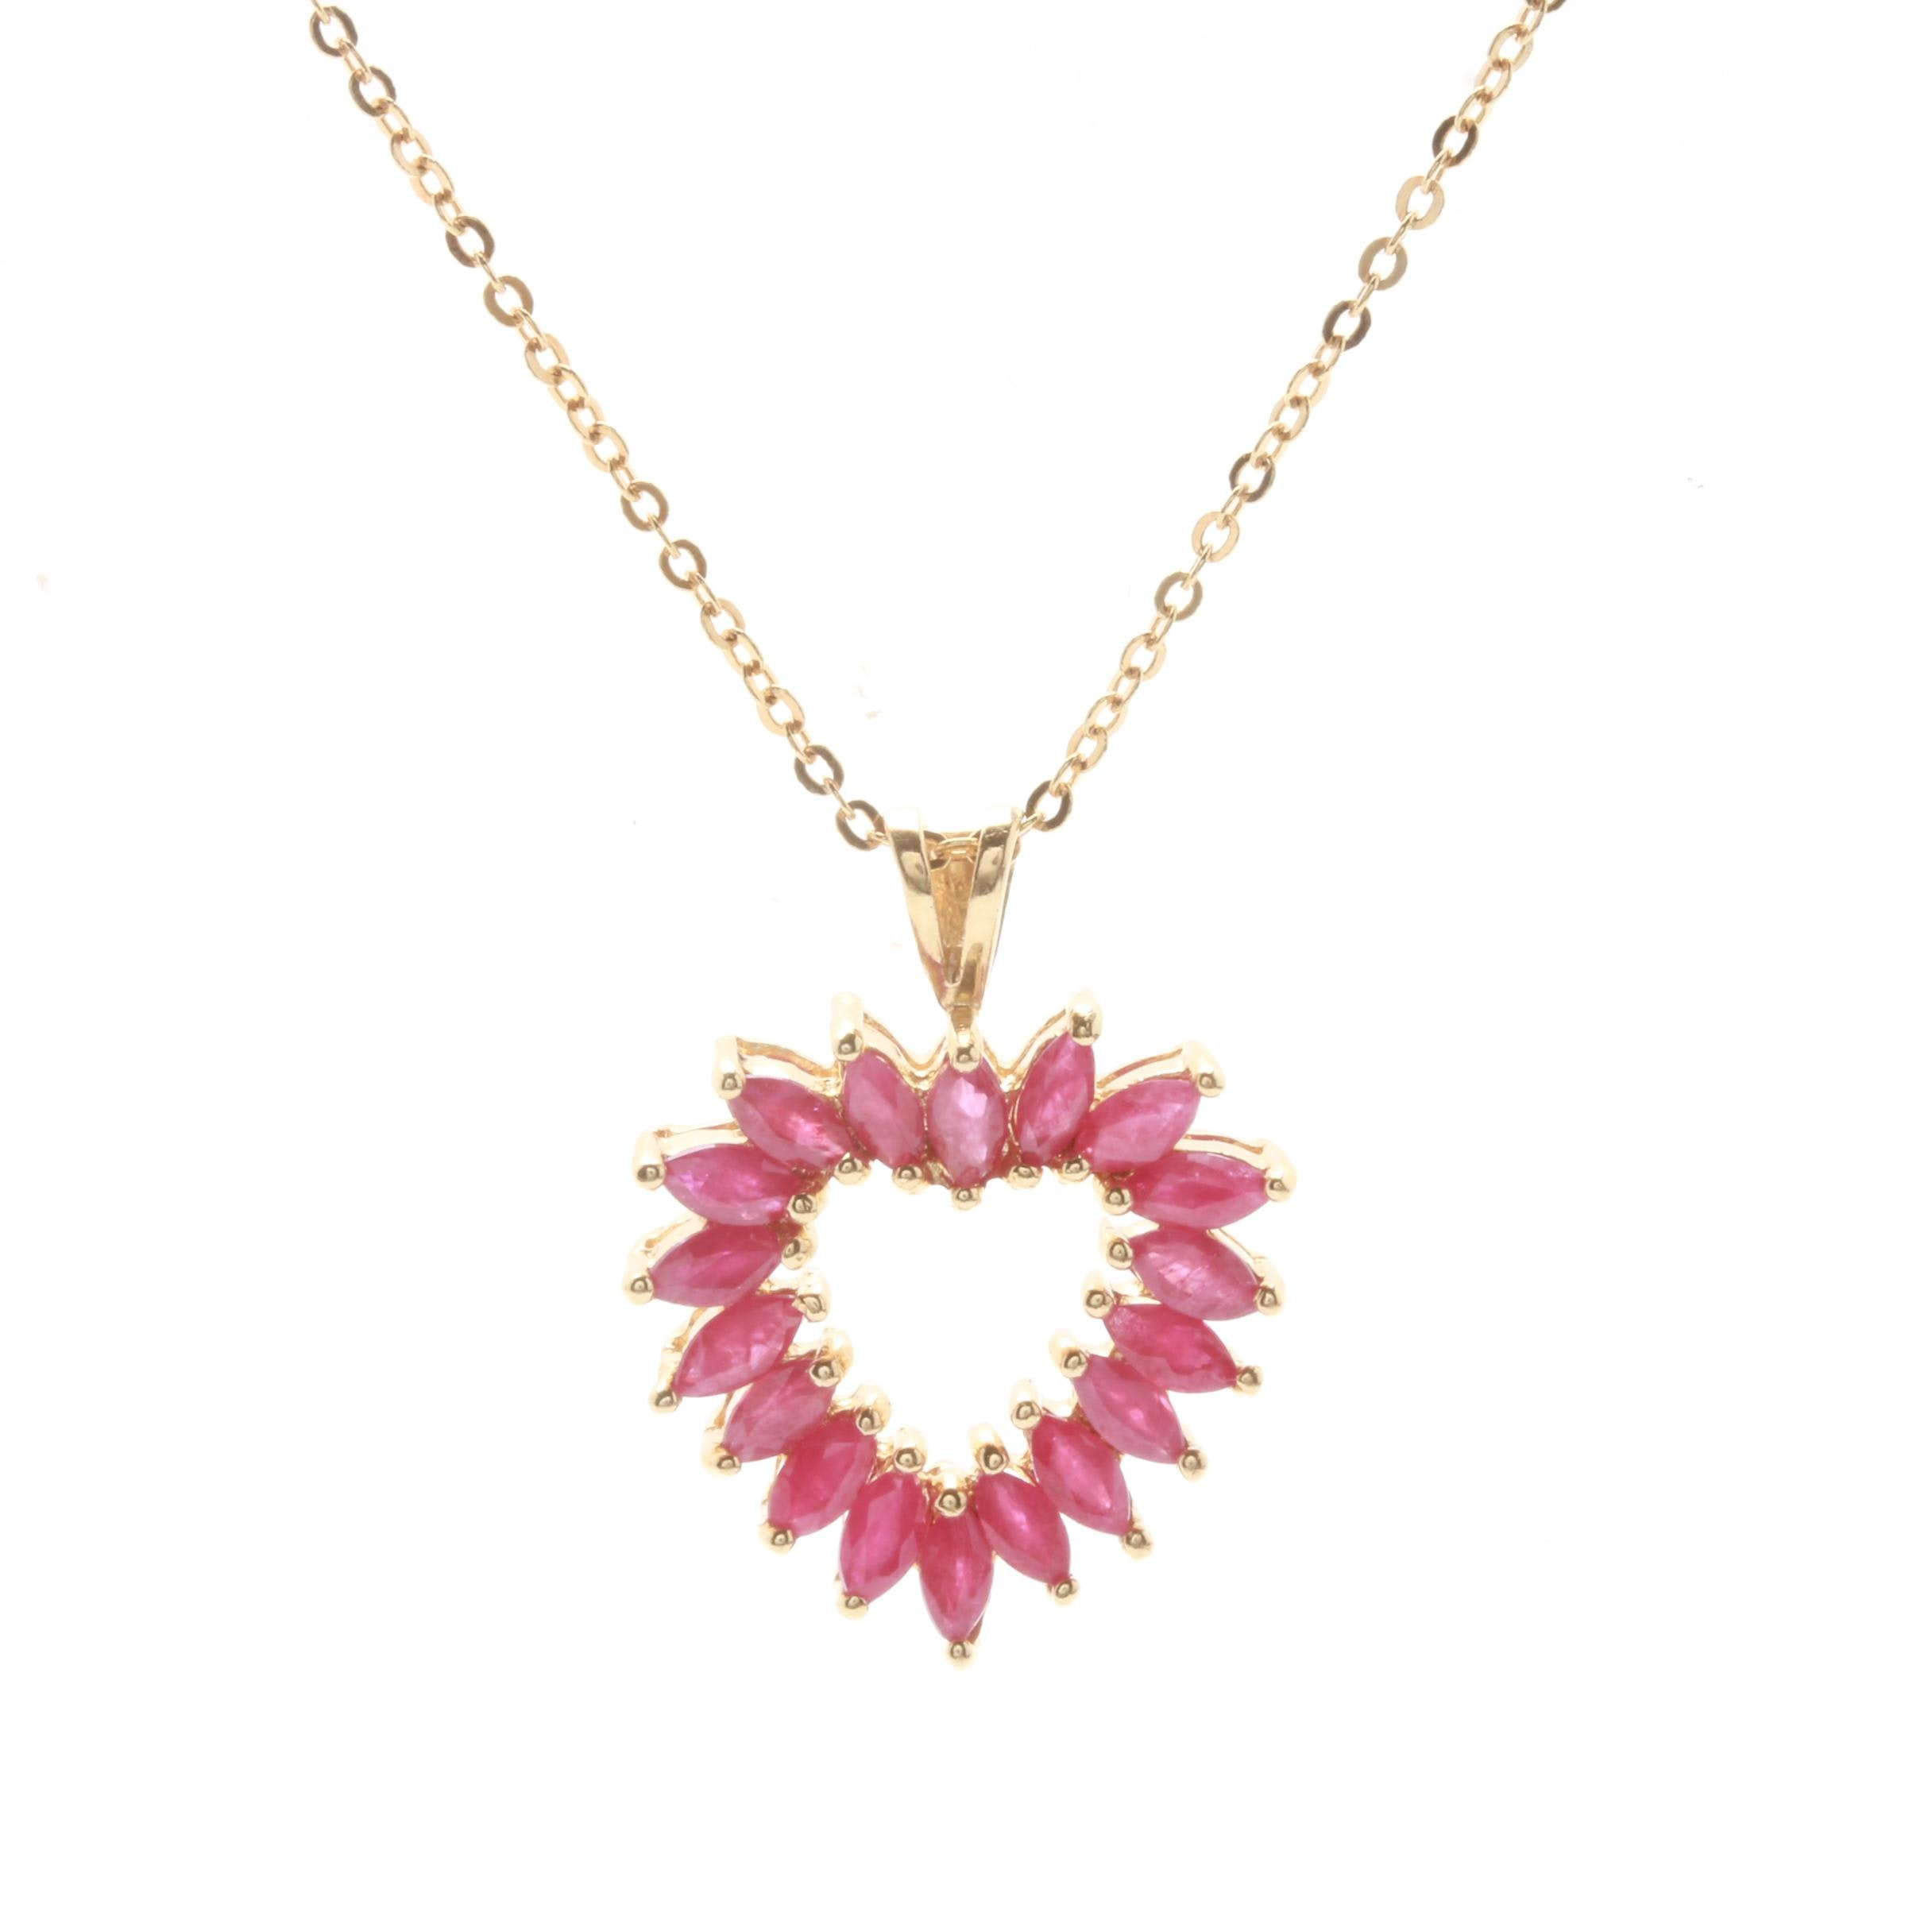 14K Yellow Gold Ruby Heart Pendant Necklace